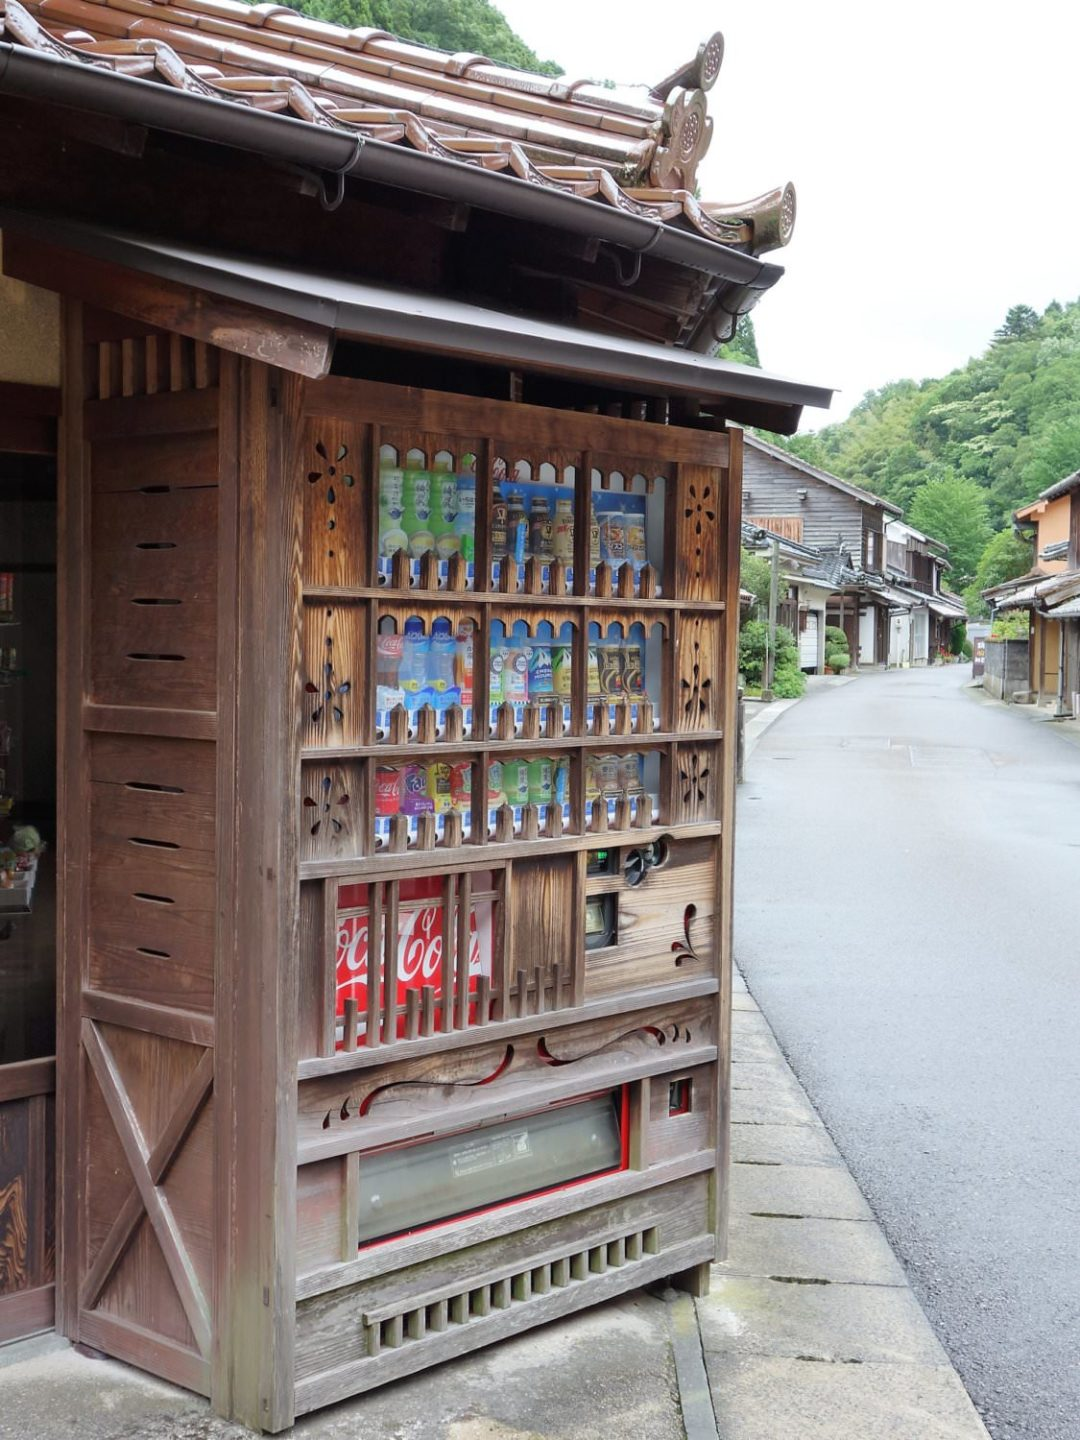 Vending machine in Omori district